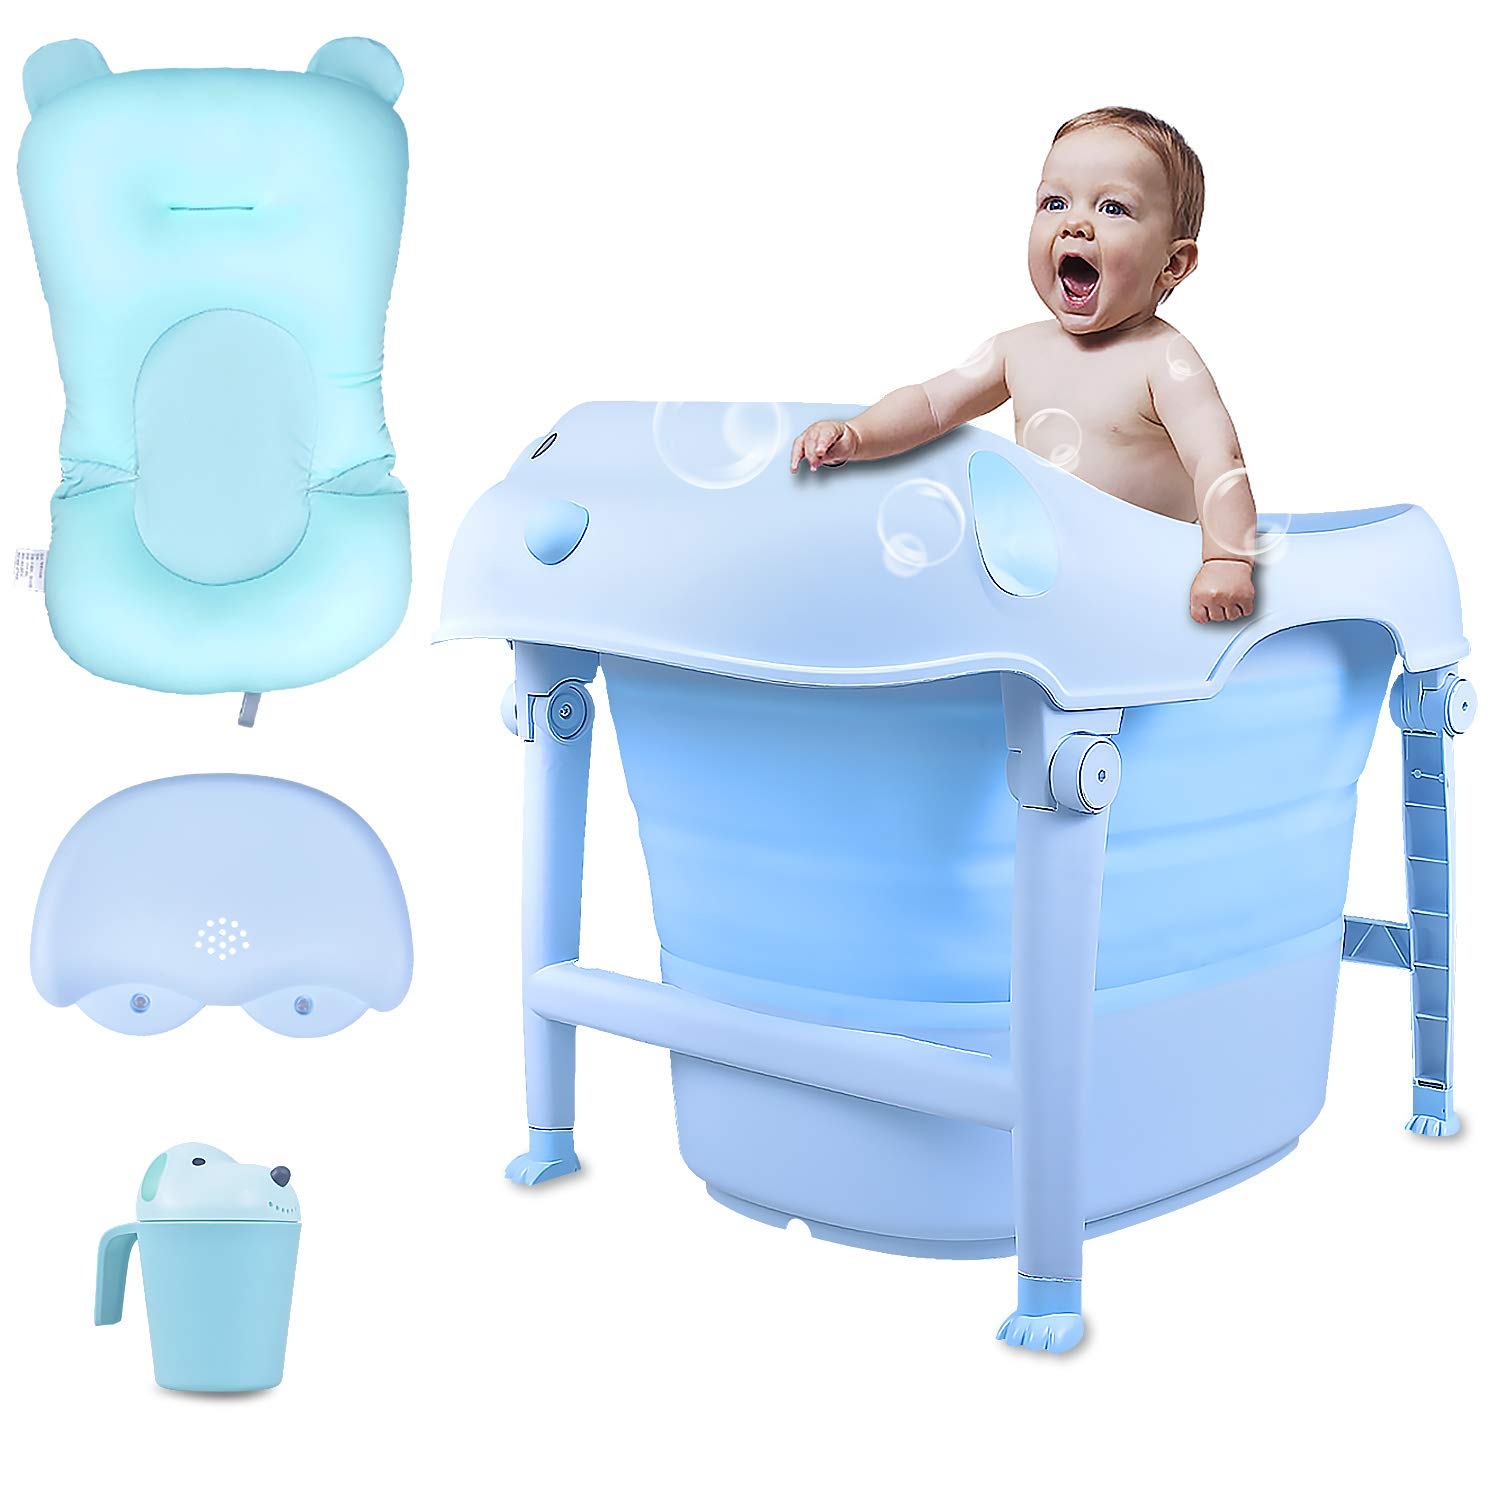 Larcenciel Collapsible Bathtub with Soft Bath Pillow /& Lounger 29.13x19.68x21.26inch Blue Baby Bathing Tub Portable Foldable Thickened Shower Basin for Infants Kids Aged 0-10 Years Old